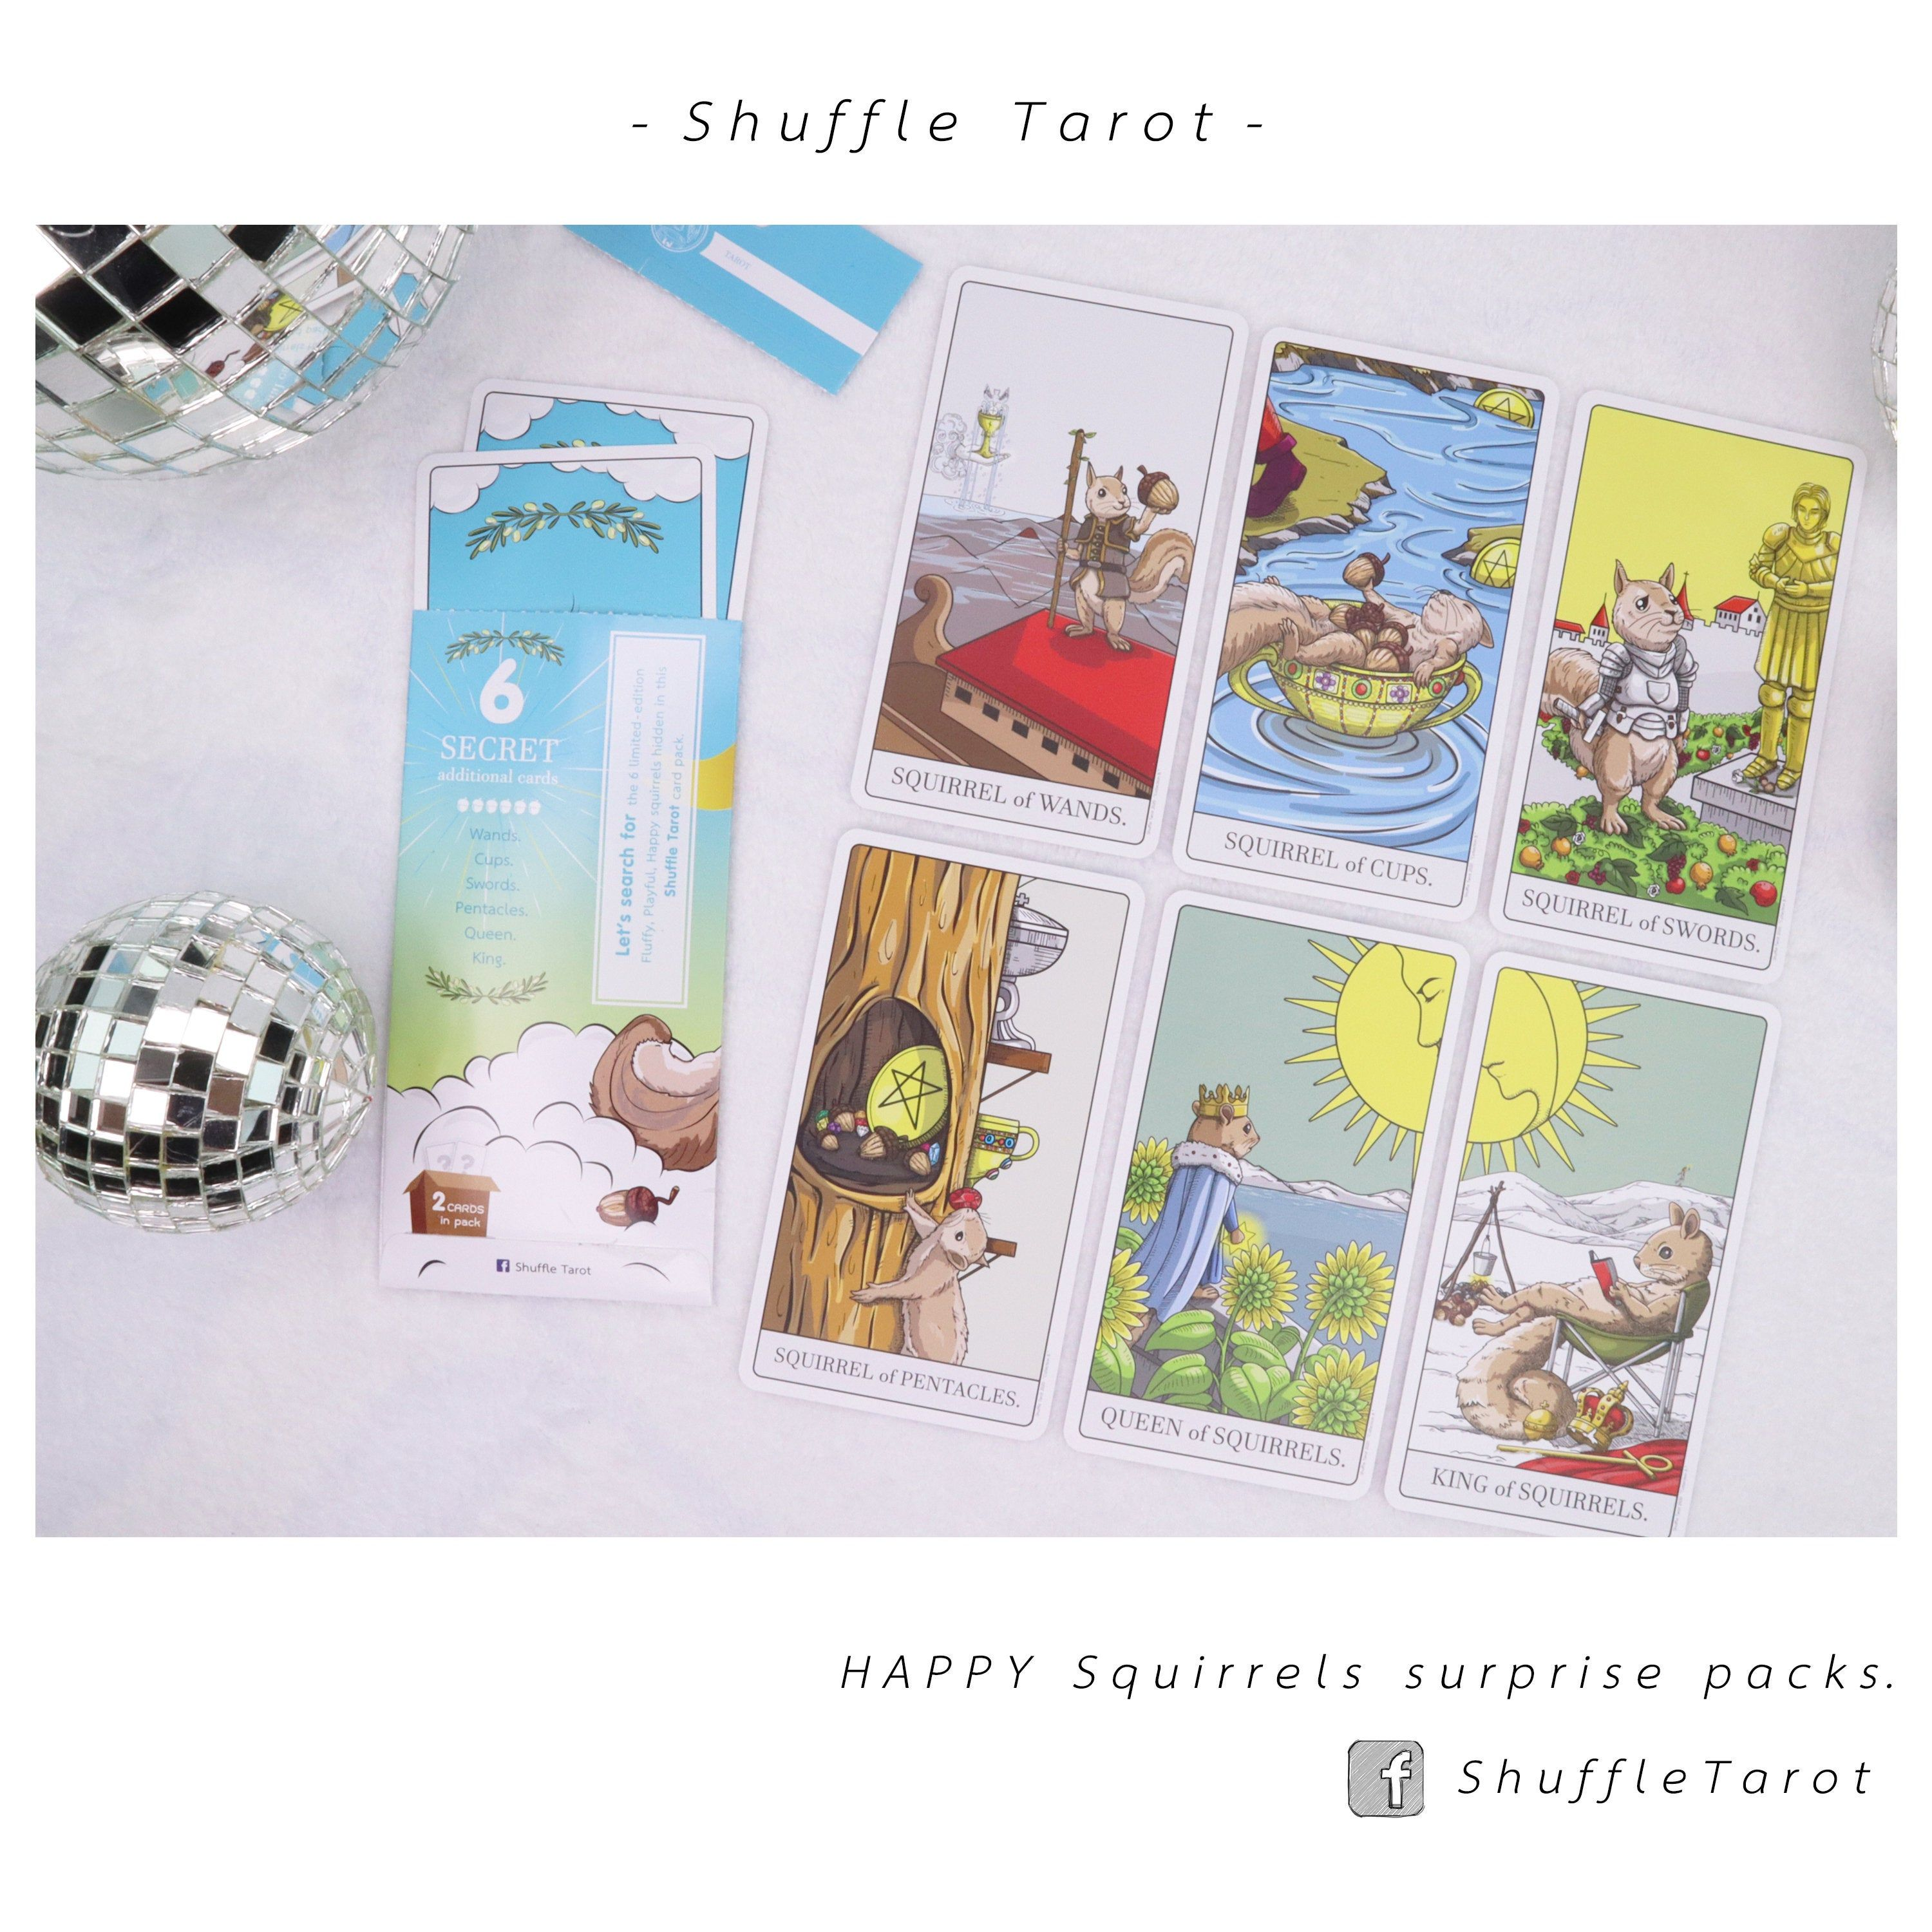 Add on for shuffle tarot deck the happy squirrel surprise